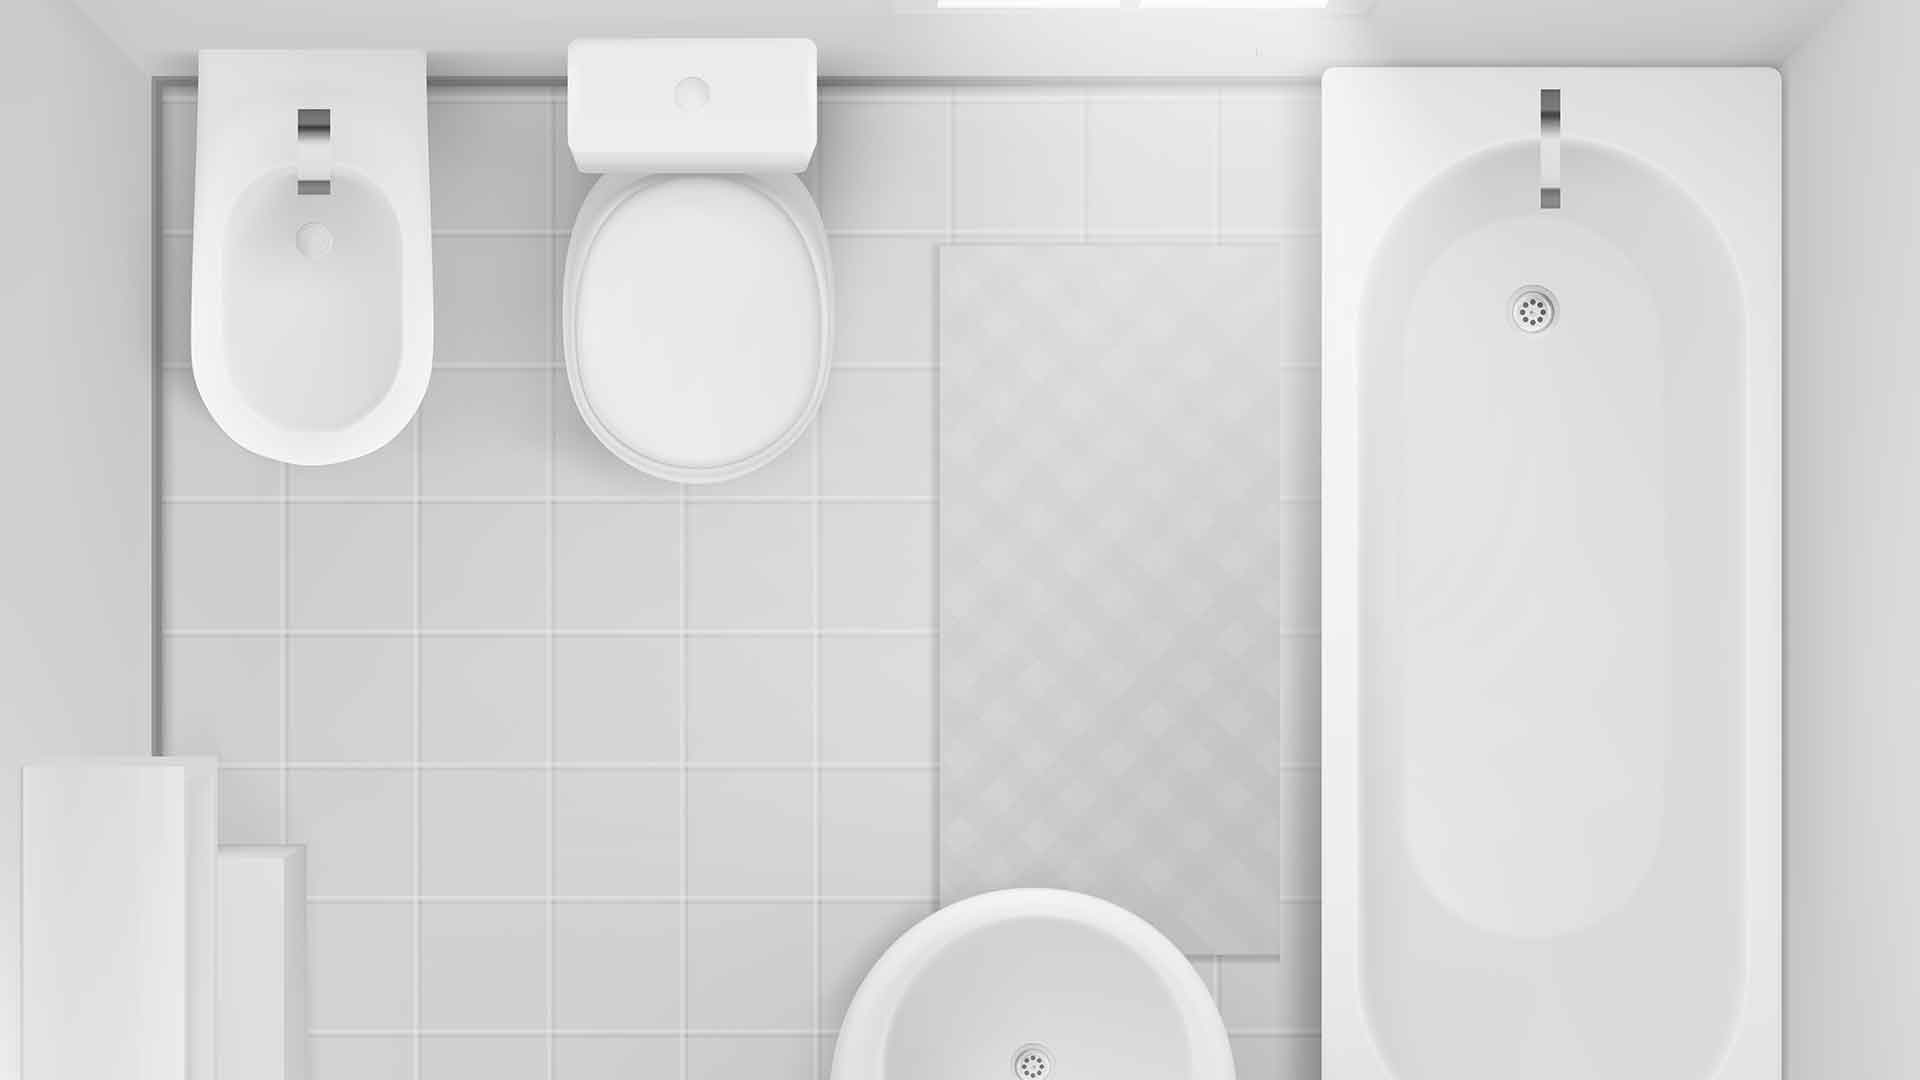 Bathroom Plumbers for Toilets, Sinks, Showers & More